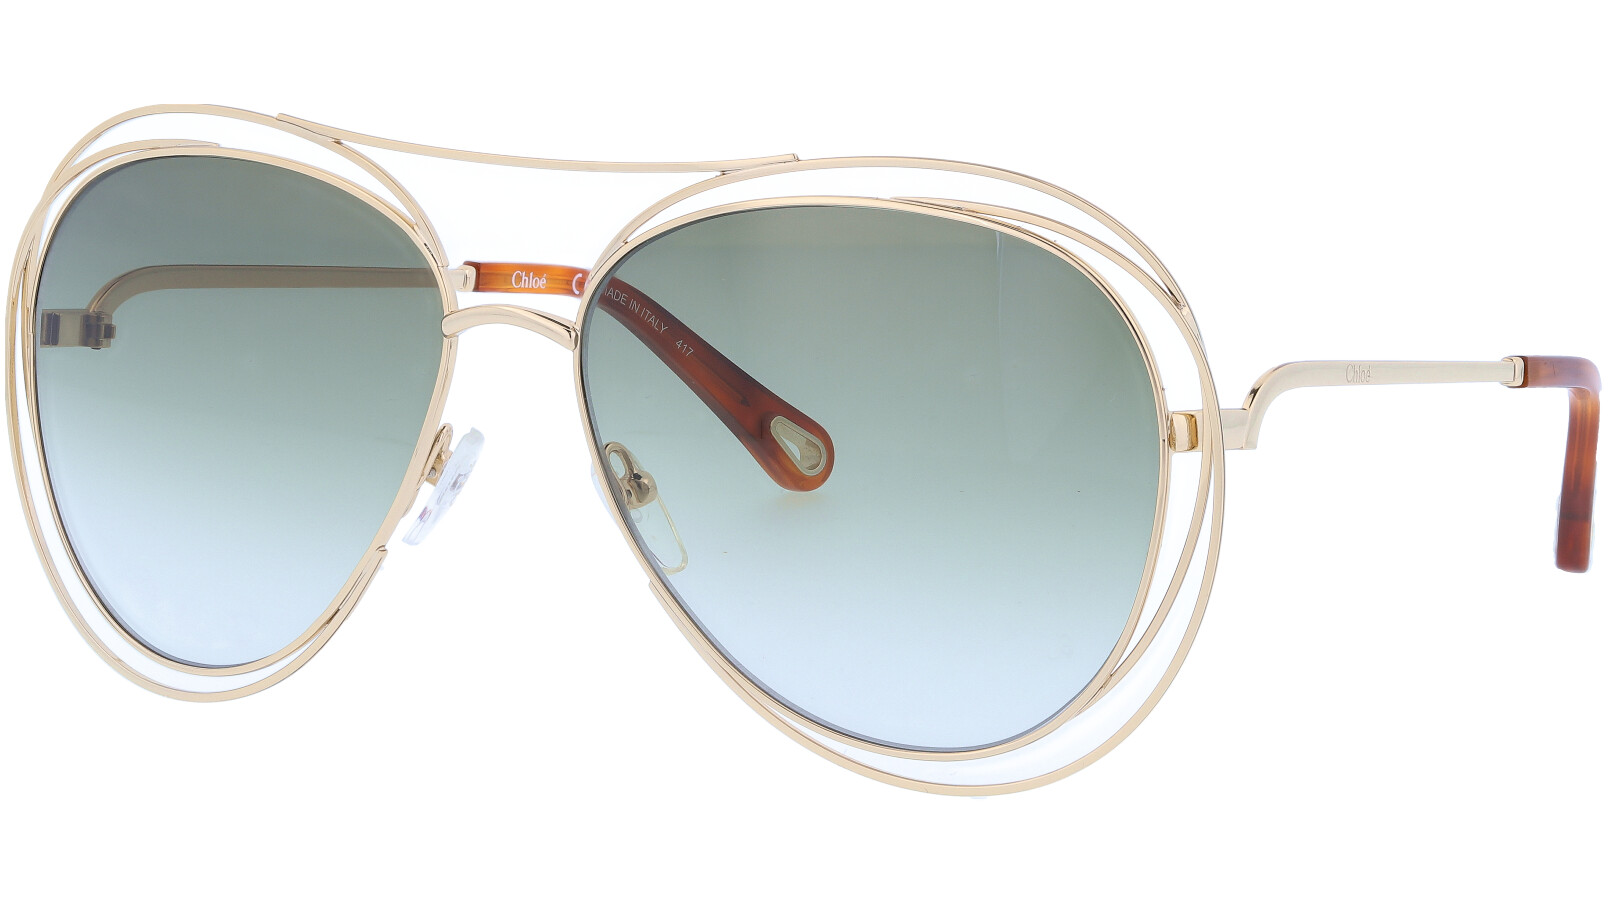 CHLOE CE134S 792 61 GOLD Sunglasses